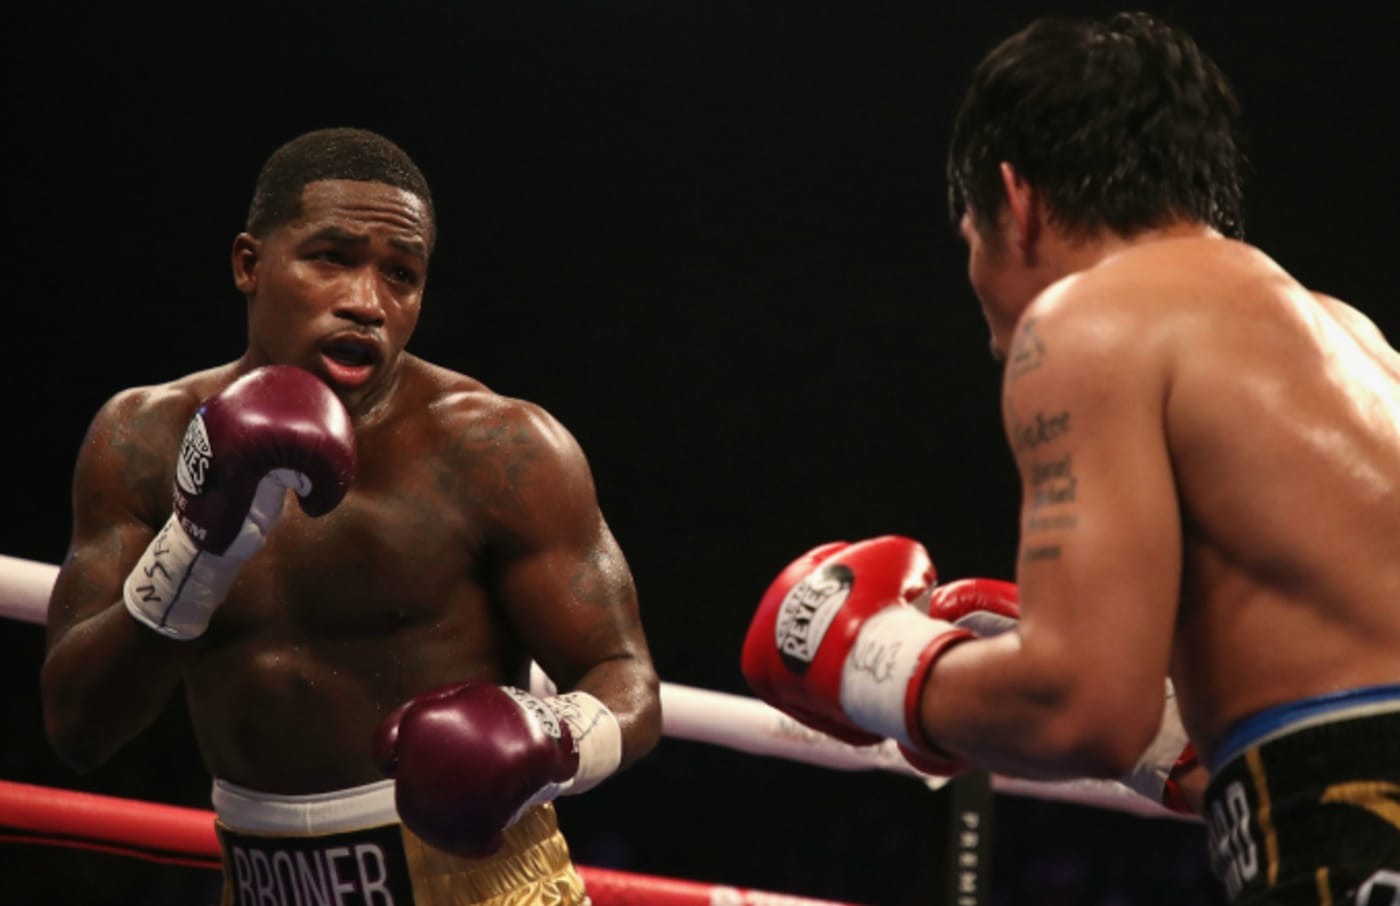 Adrien Broner squares up with Manny Pacquiao